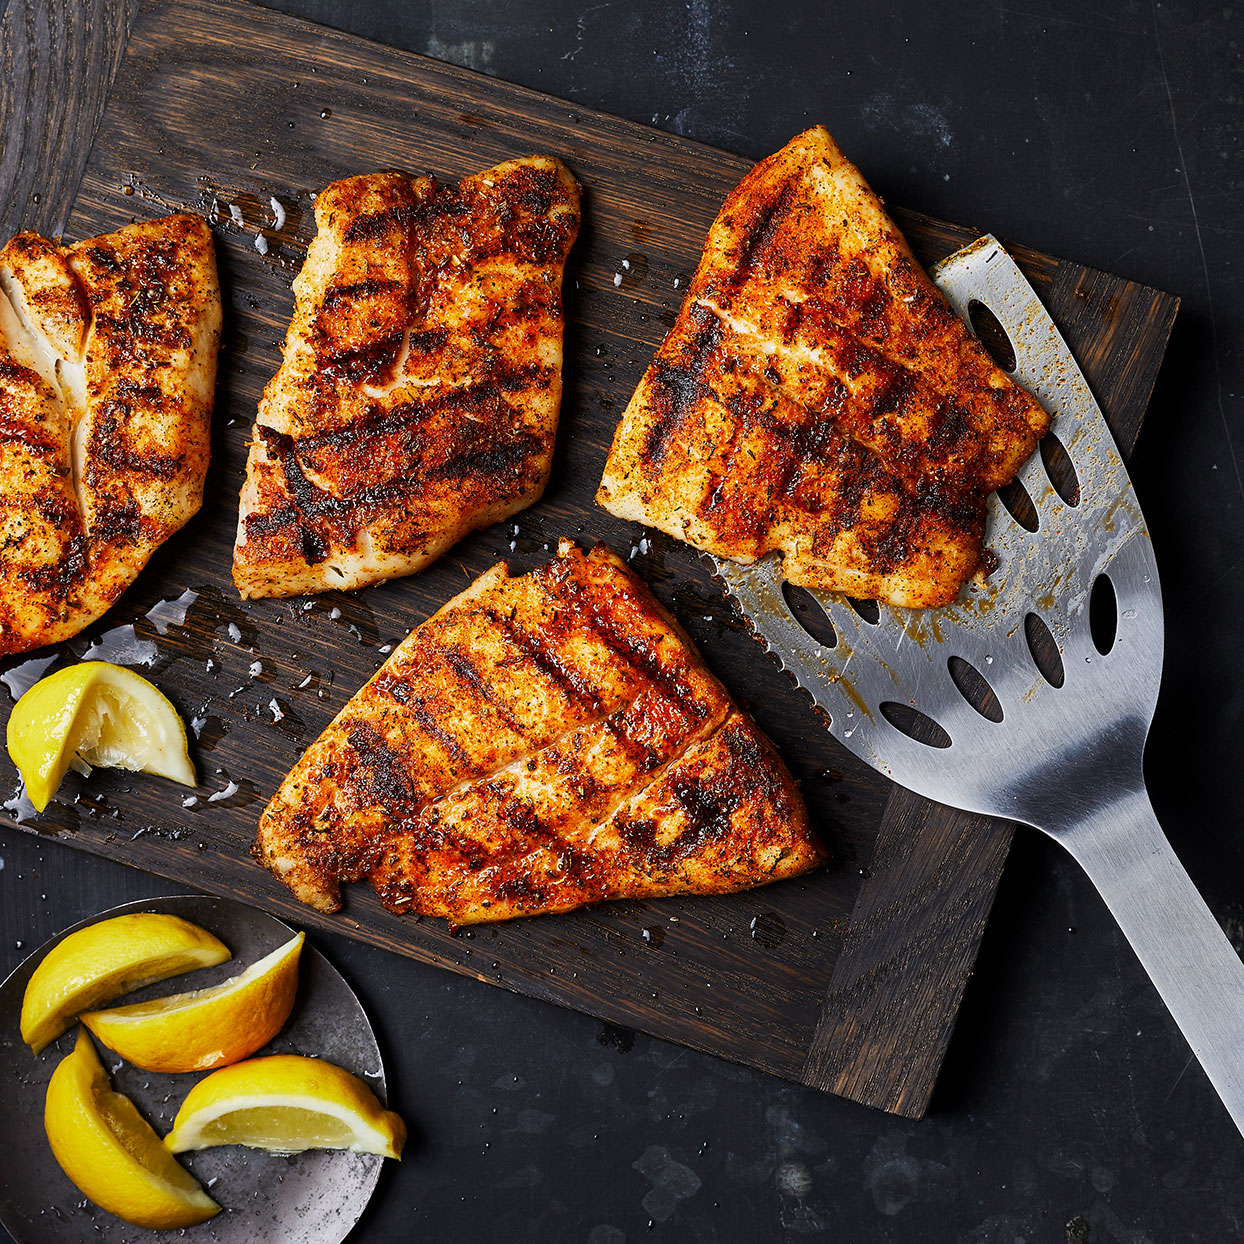 This simple grilled snapper has clean flavors and a nice char flavor from the grill. It's well seasoned but not overly spicy. Serve along with grilled veggies or a fresh green salad to make it a meal. Source: EatingWell.com, May 2020